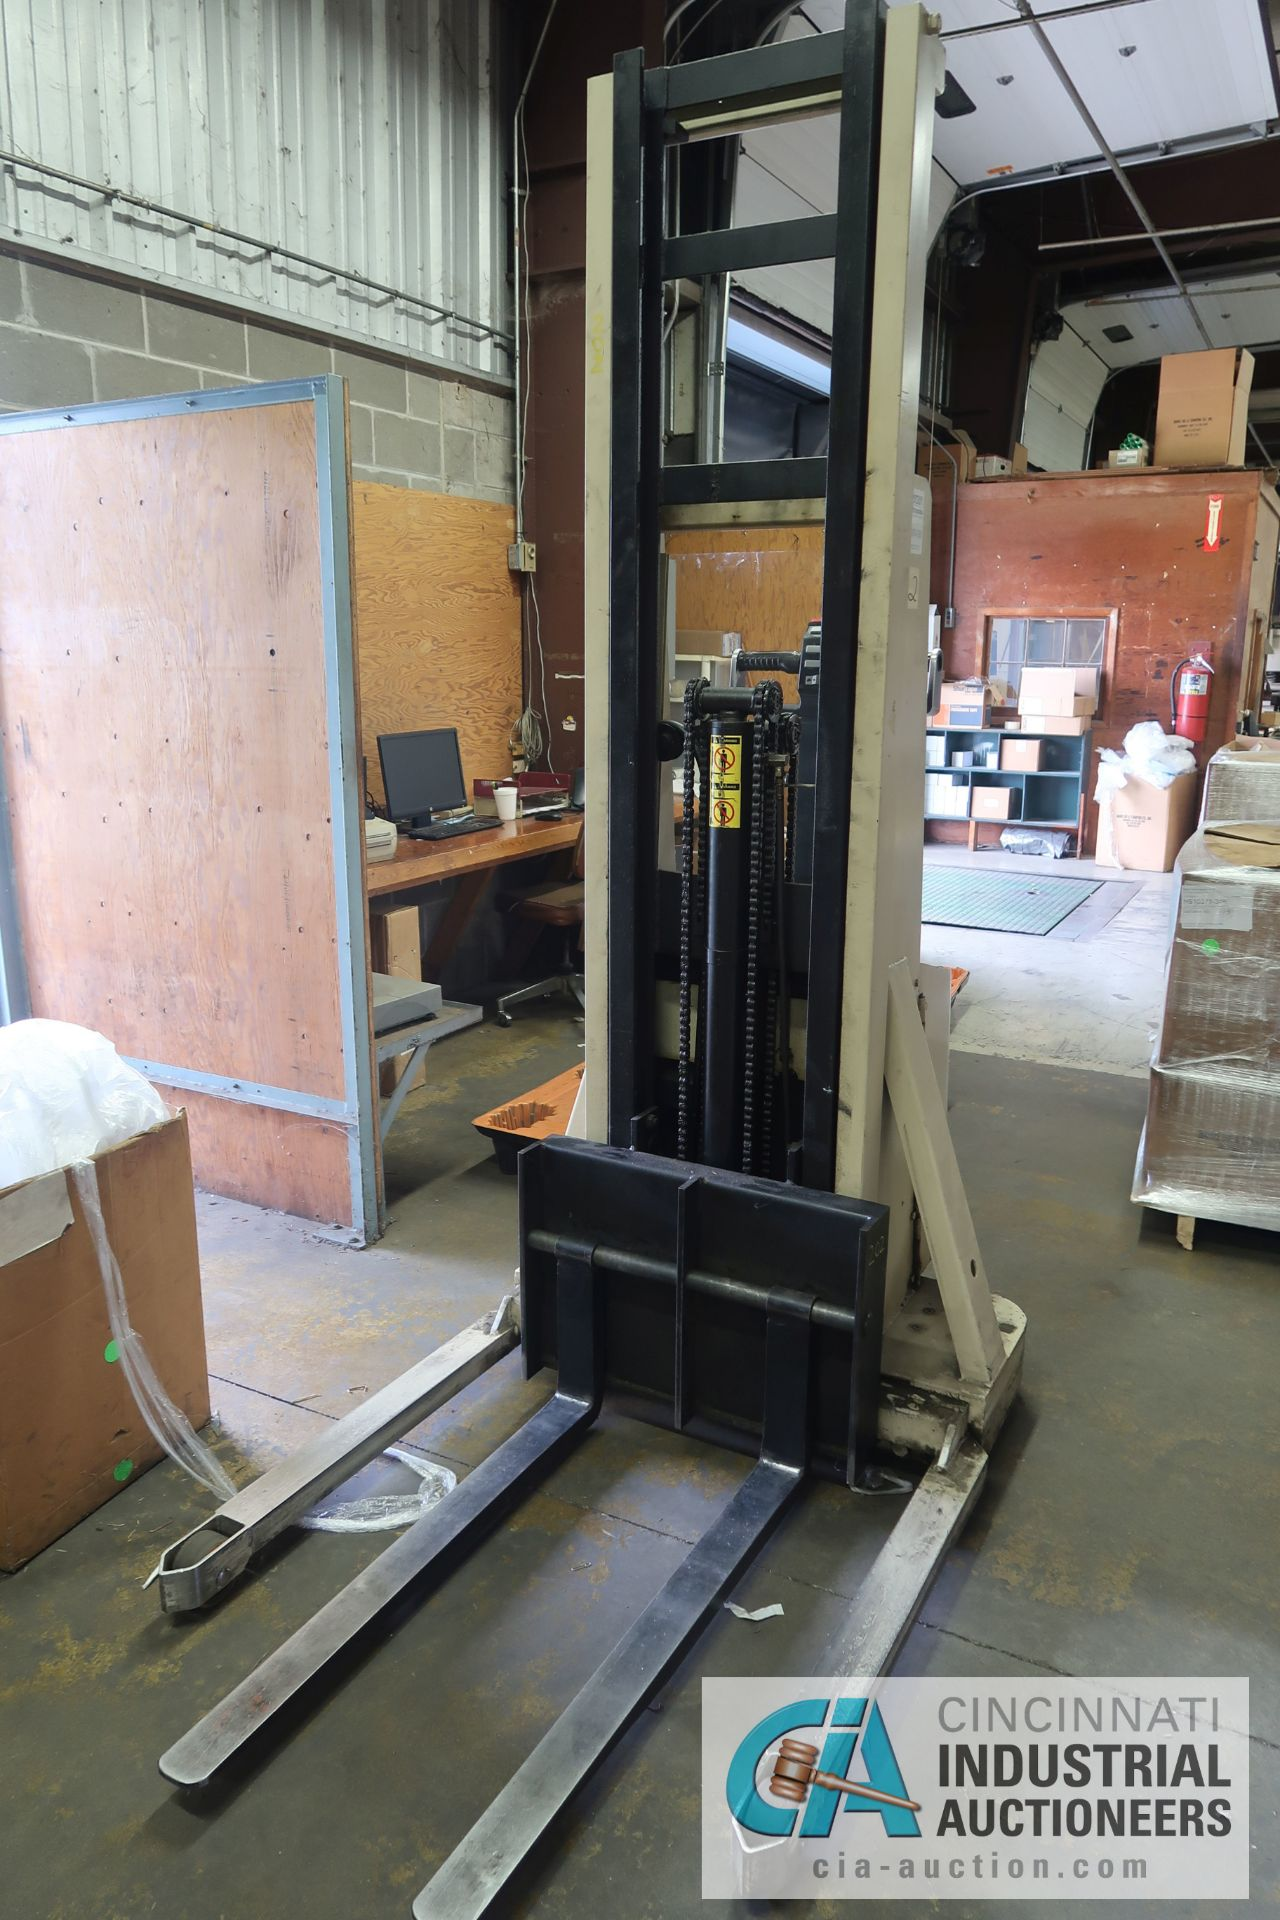 2,000 LB. CAPACITY CROWN MODEL 20MT ELECTRIC WALK BEHIND ELECTRIC STACKER; S/N 1A132307, 24 VOLT, - Image 2 of 5